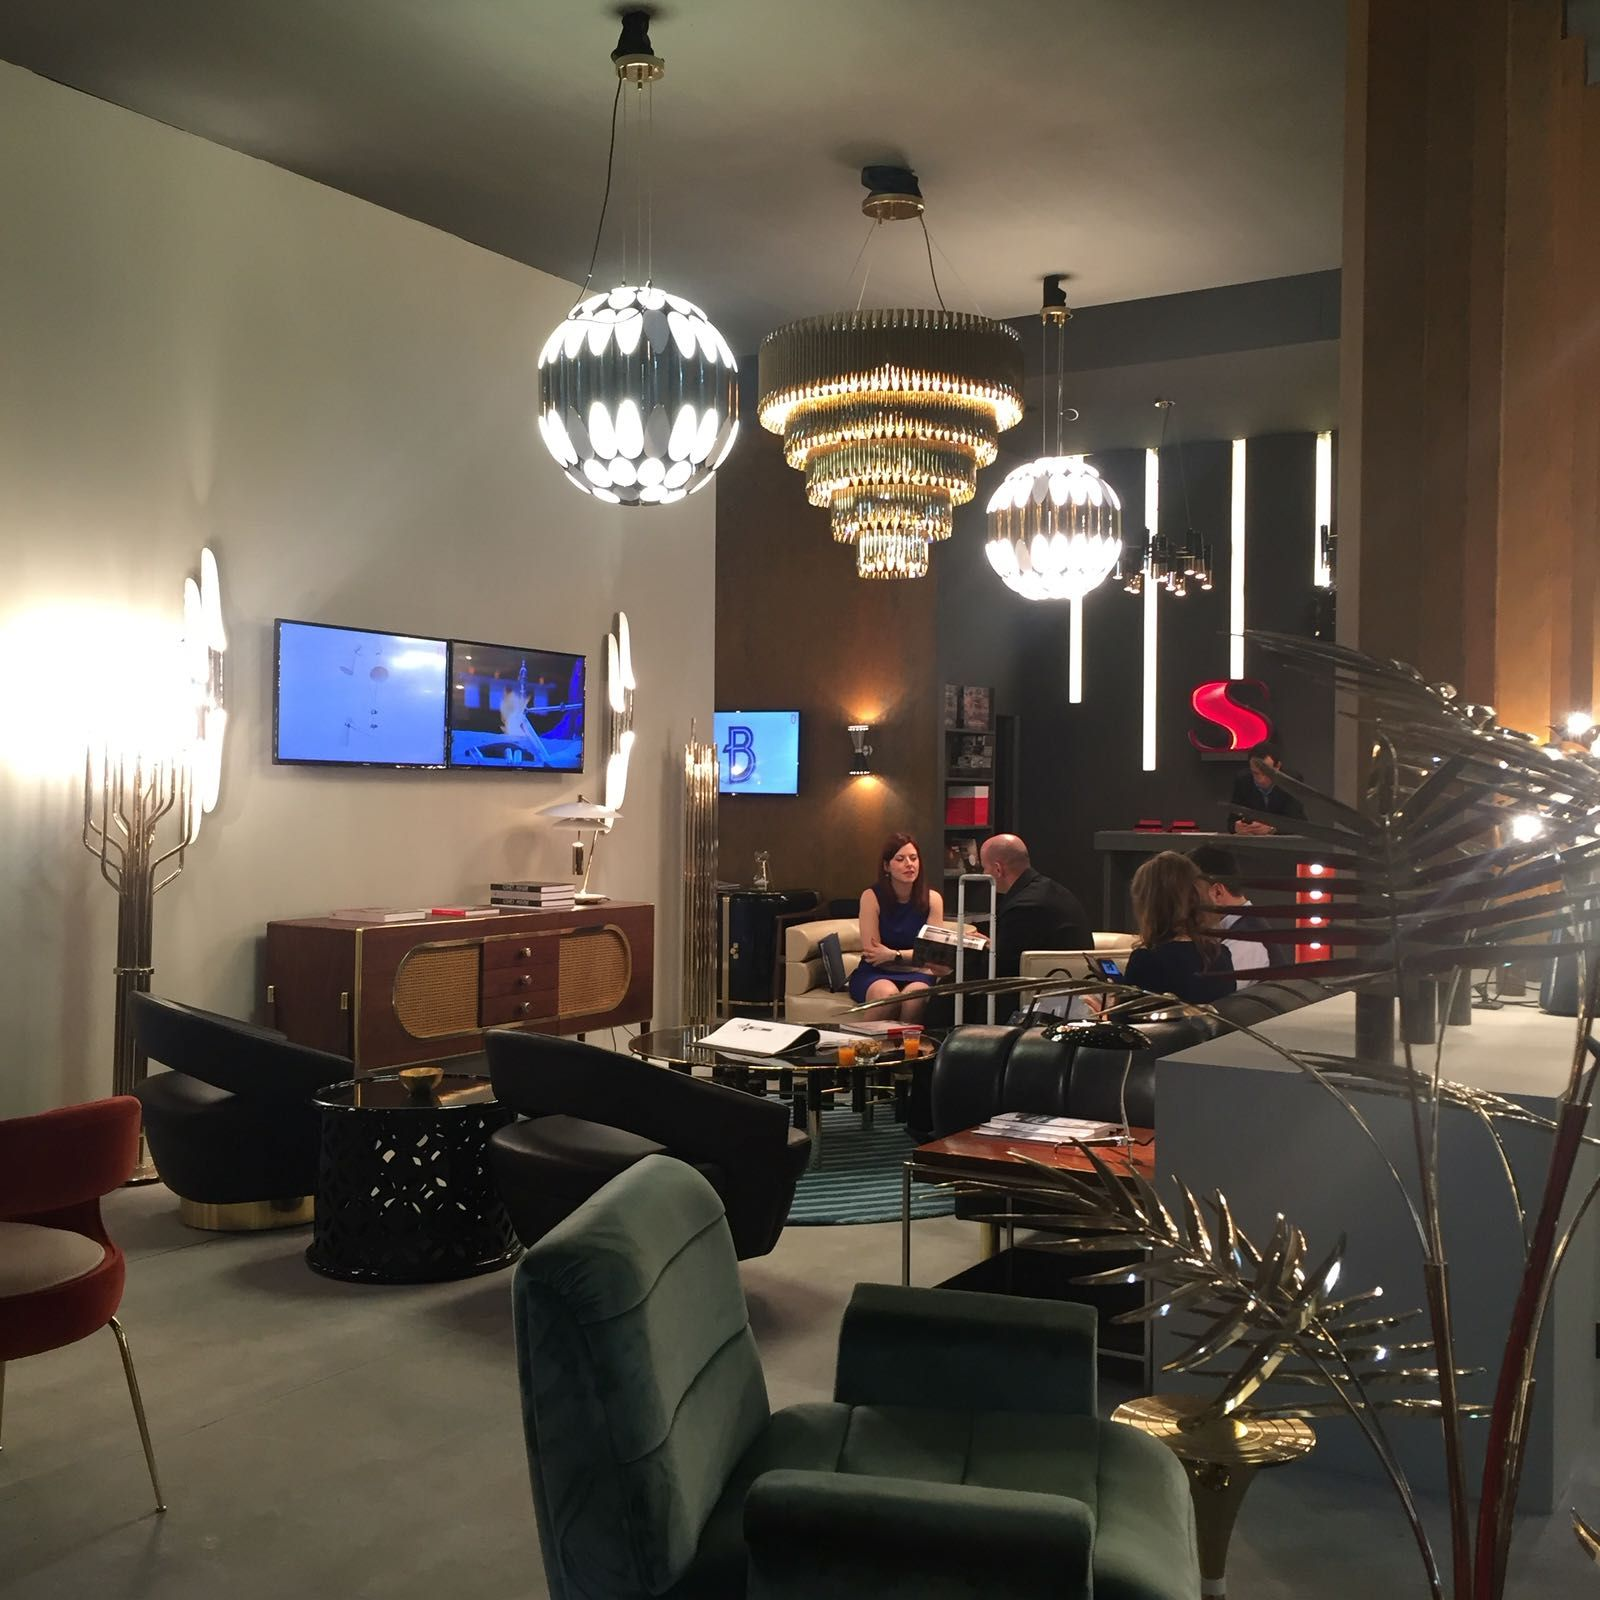 Homedesignideas Eu: If You Didn't Get The Chance To Visit DelightFULL Stand At